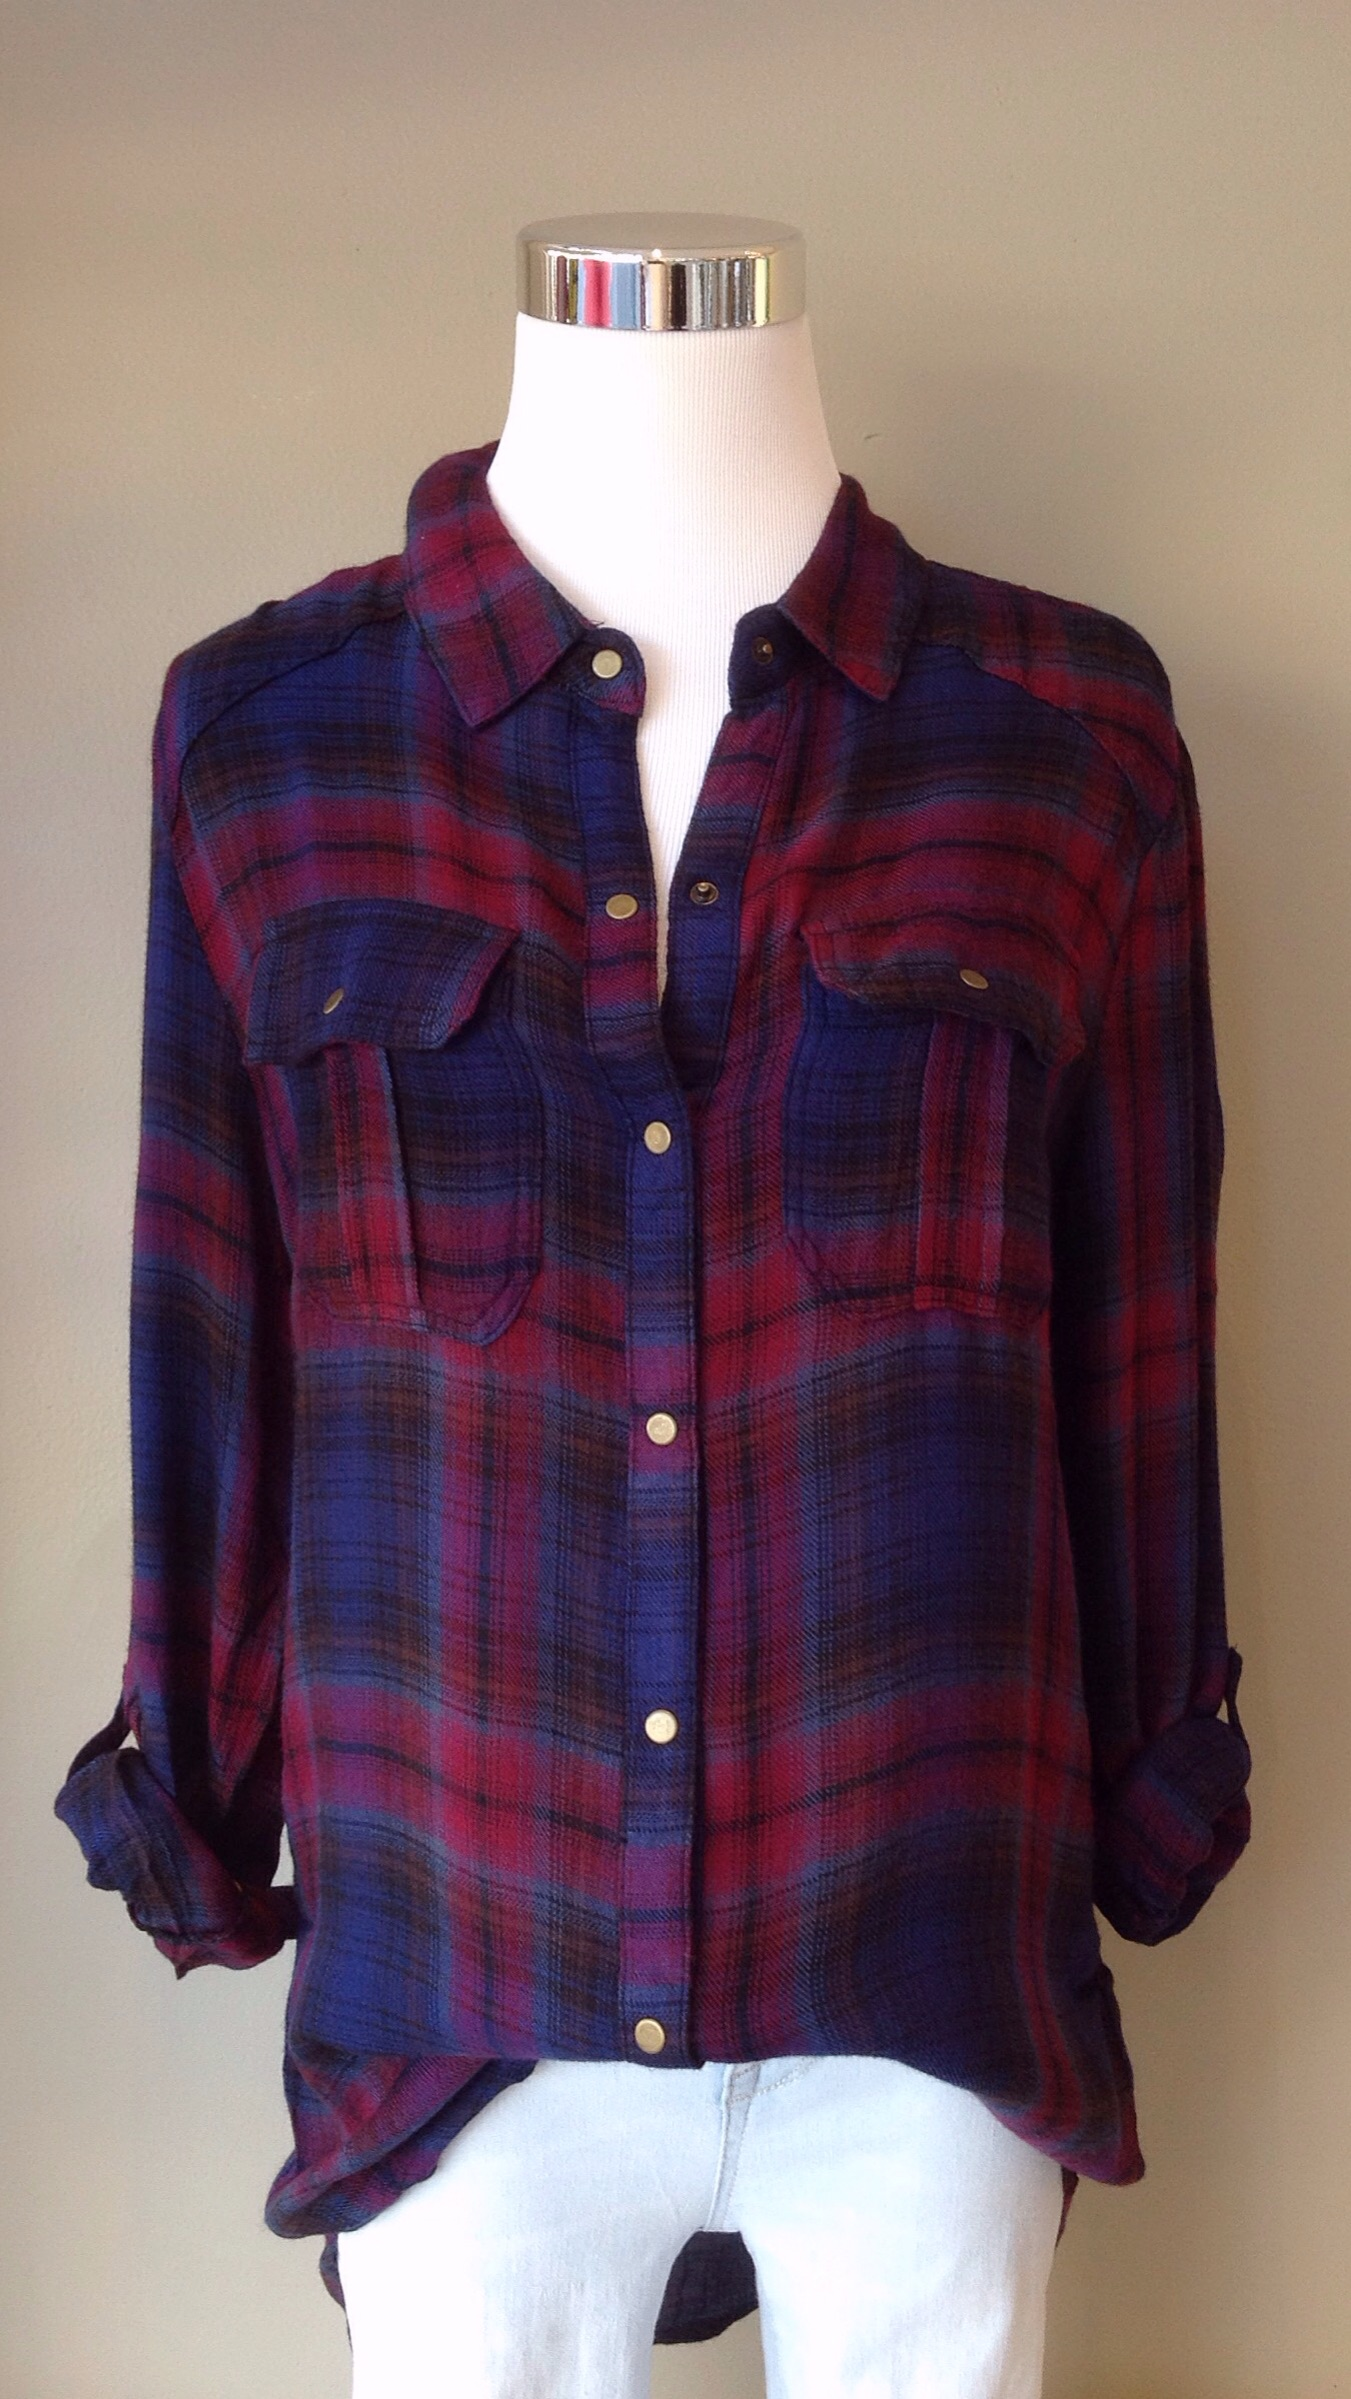 Lightweight plaid button-down top in navy/wine, $34